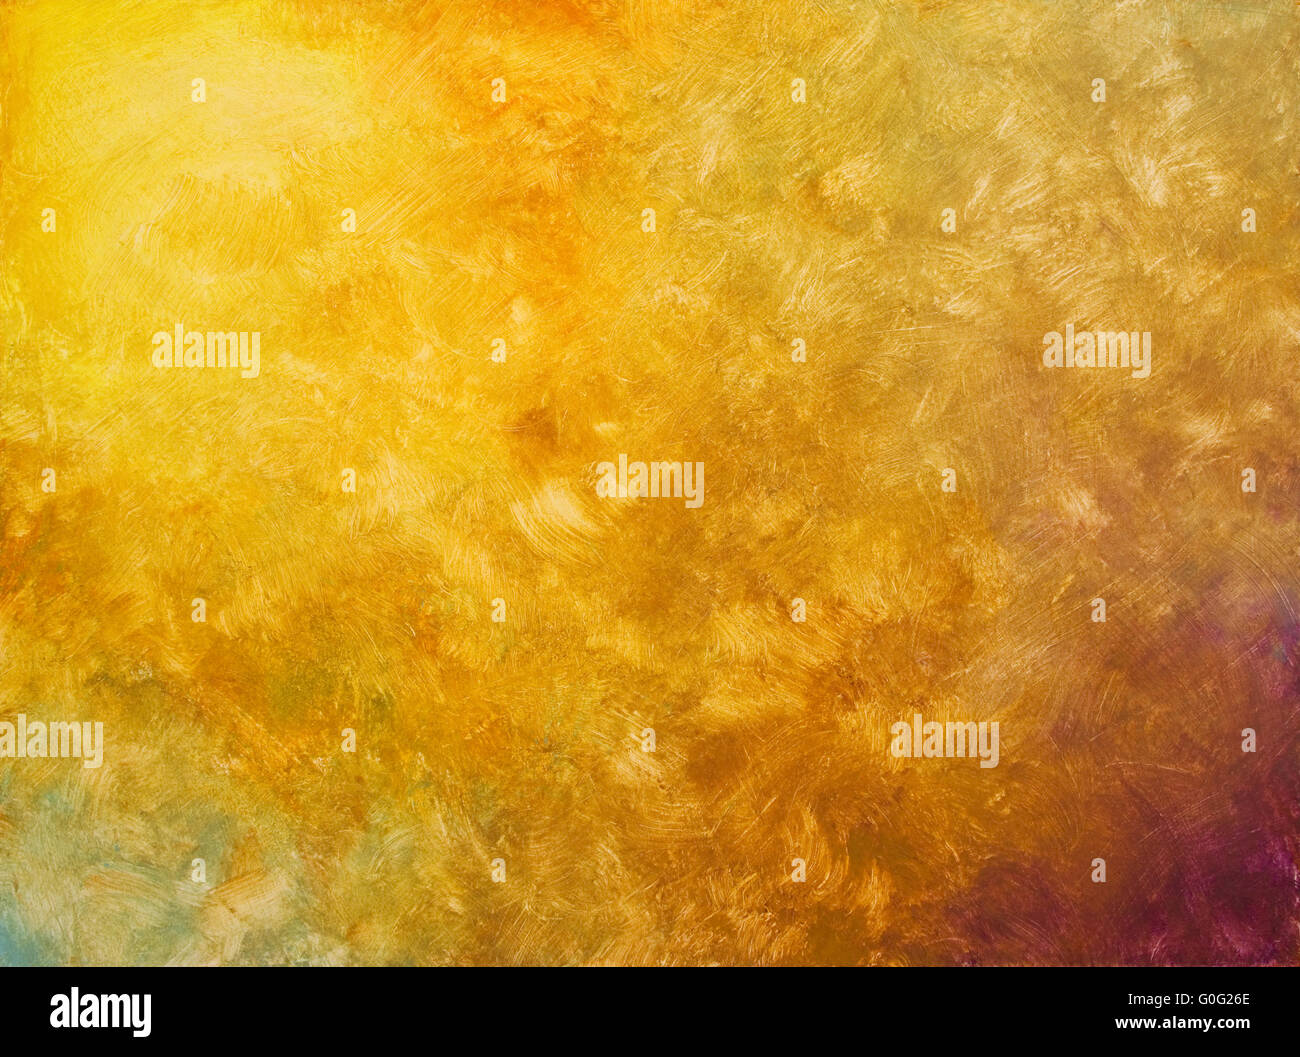 hand painted gradient texture - Stock Image